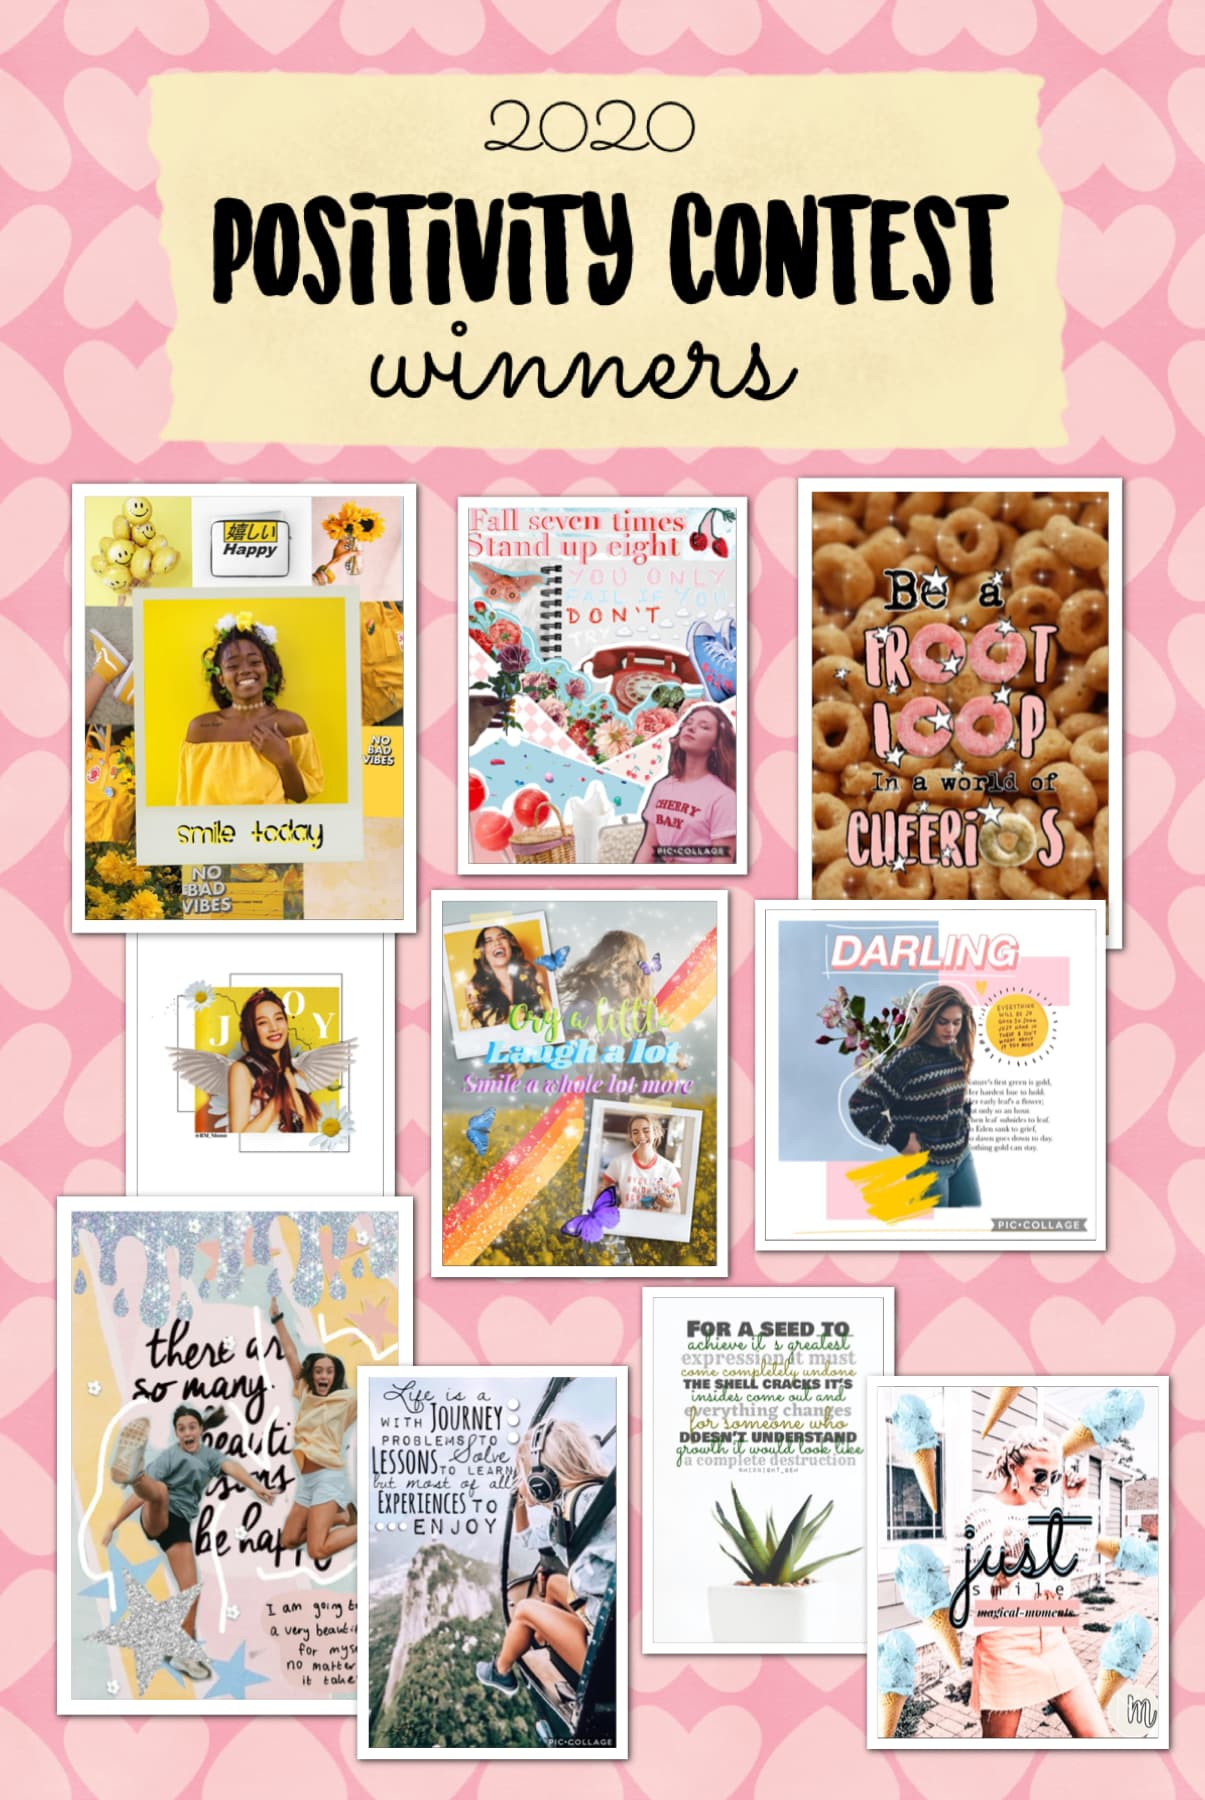 Winners are out. Thank you for your patience. Even w/o this contest, please continue to spread positivity 💖🥰